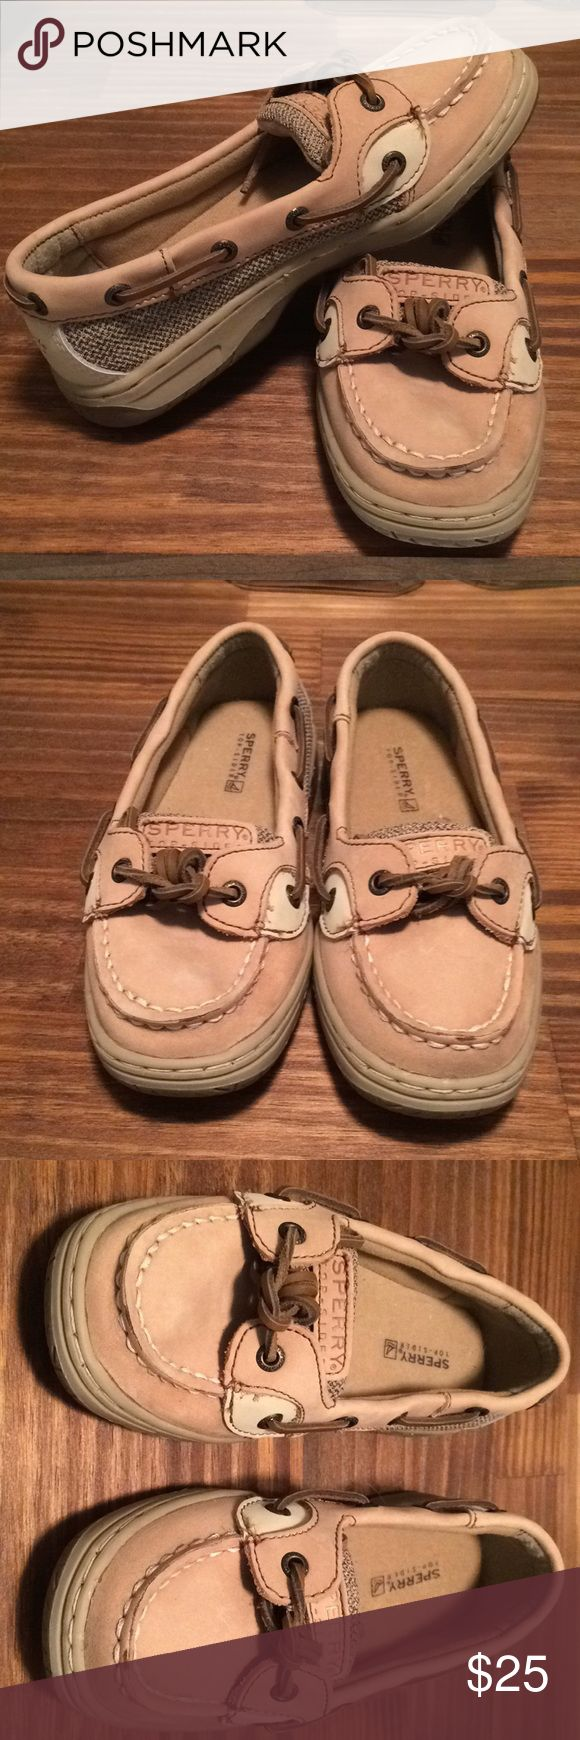 Girls Size 1 Sperry Angelfish Shoes Never worn! Girls size 1 Tan/khaki Sperry Angelfish Slip on Shoes. Sperry Shoes Dress Shoes